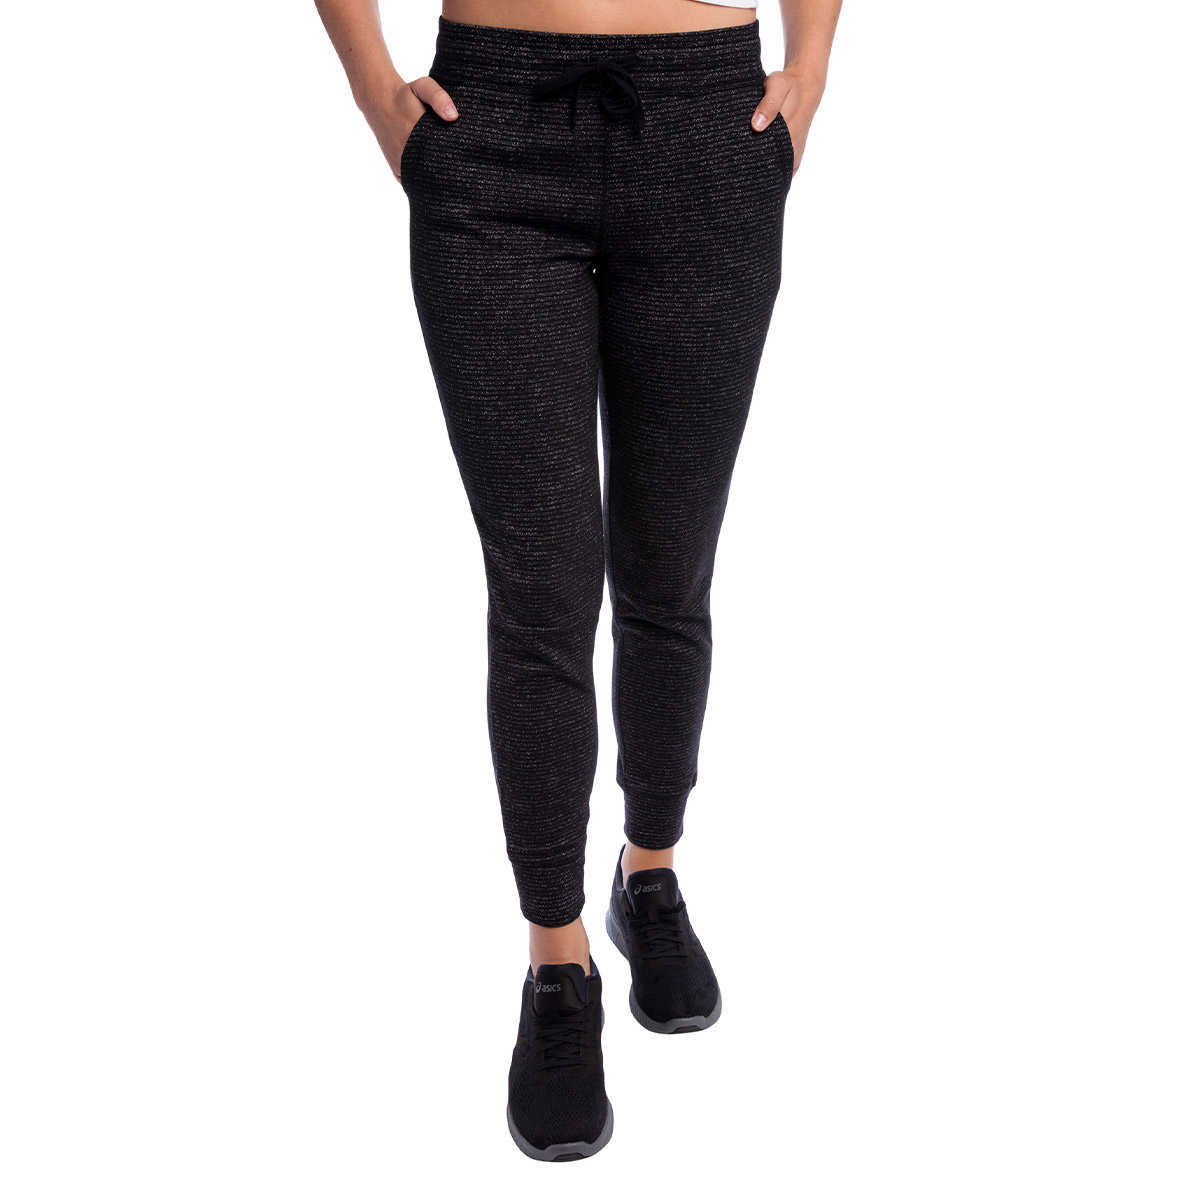 Champion Women's French Terry Pocket Pant, Black/Small